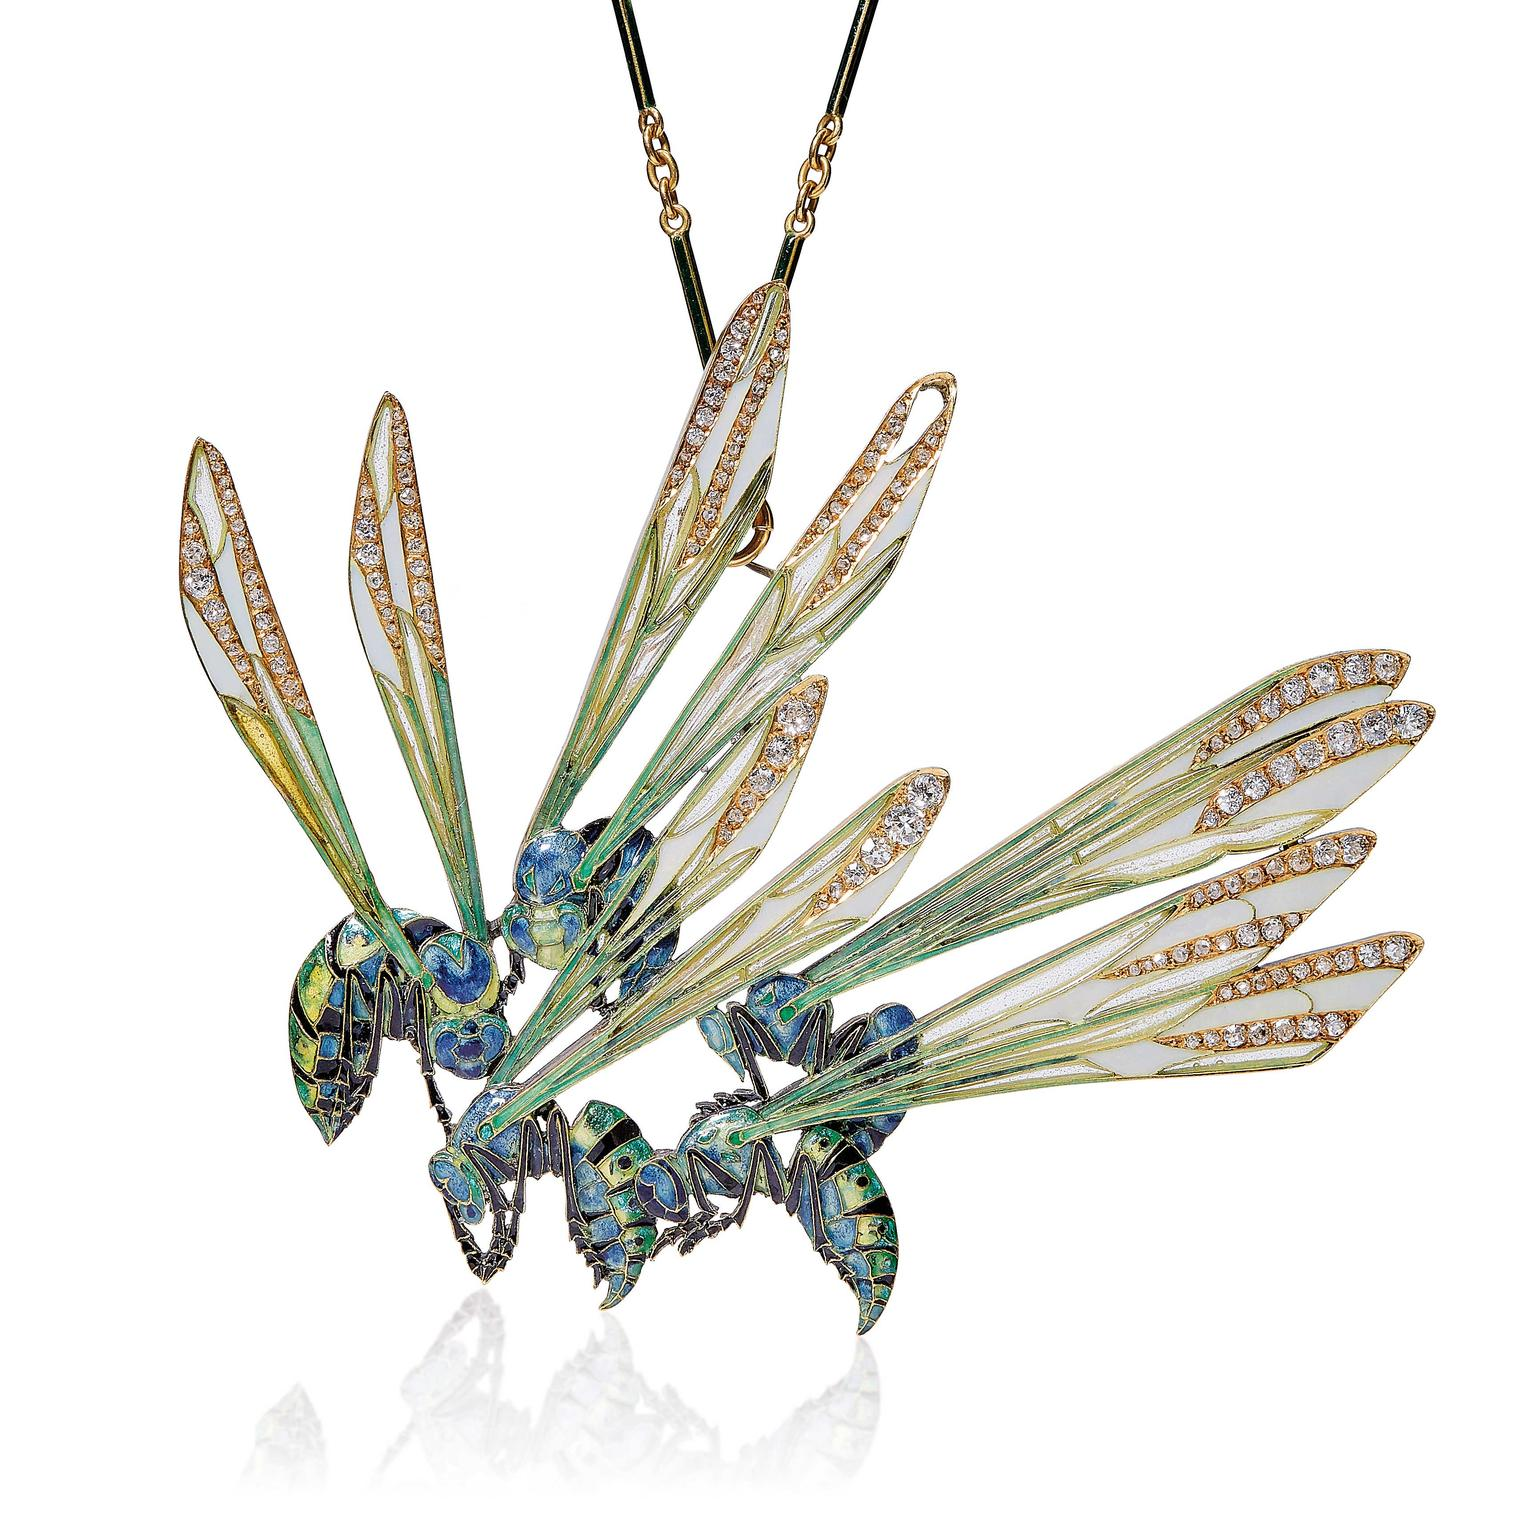 lot-44-art-nouveau-wasp-pendant-by-rene-lalique1905.jpg